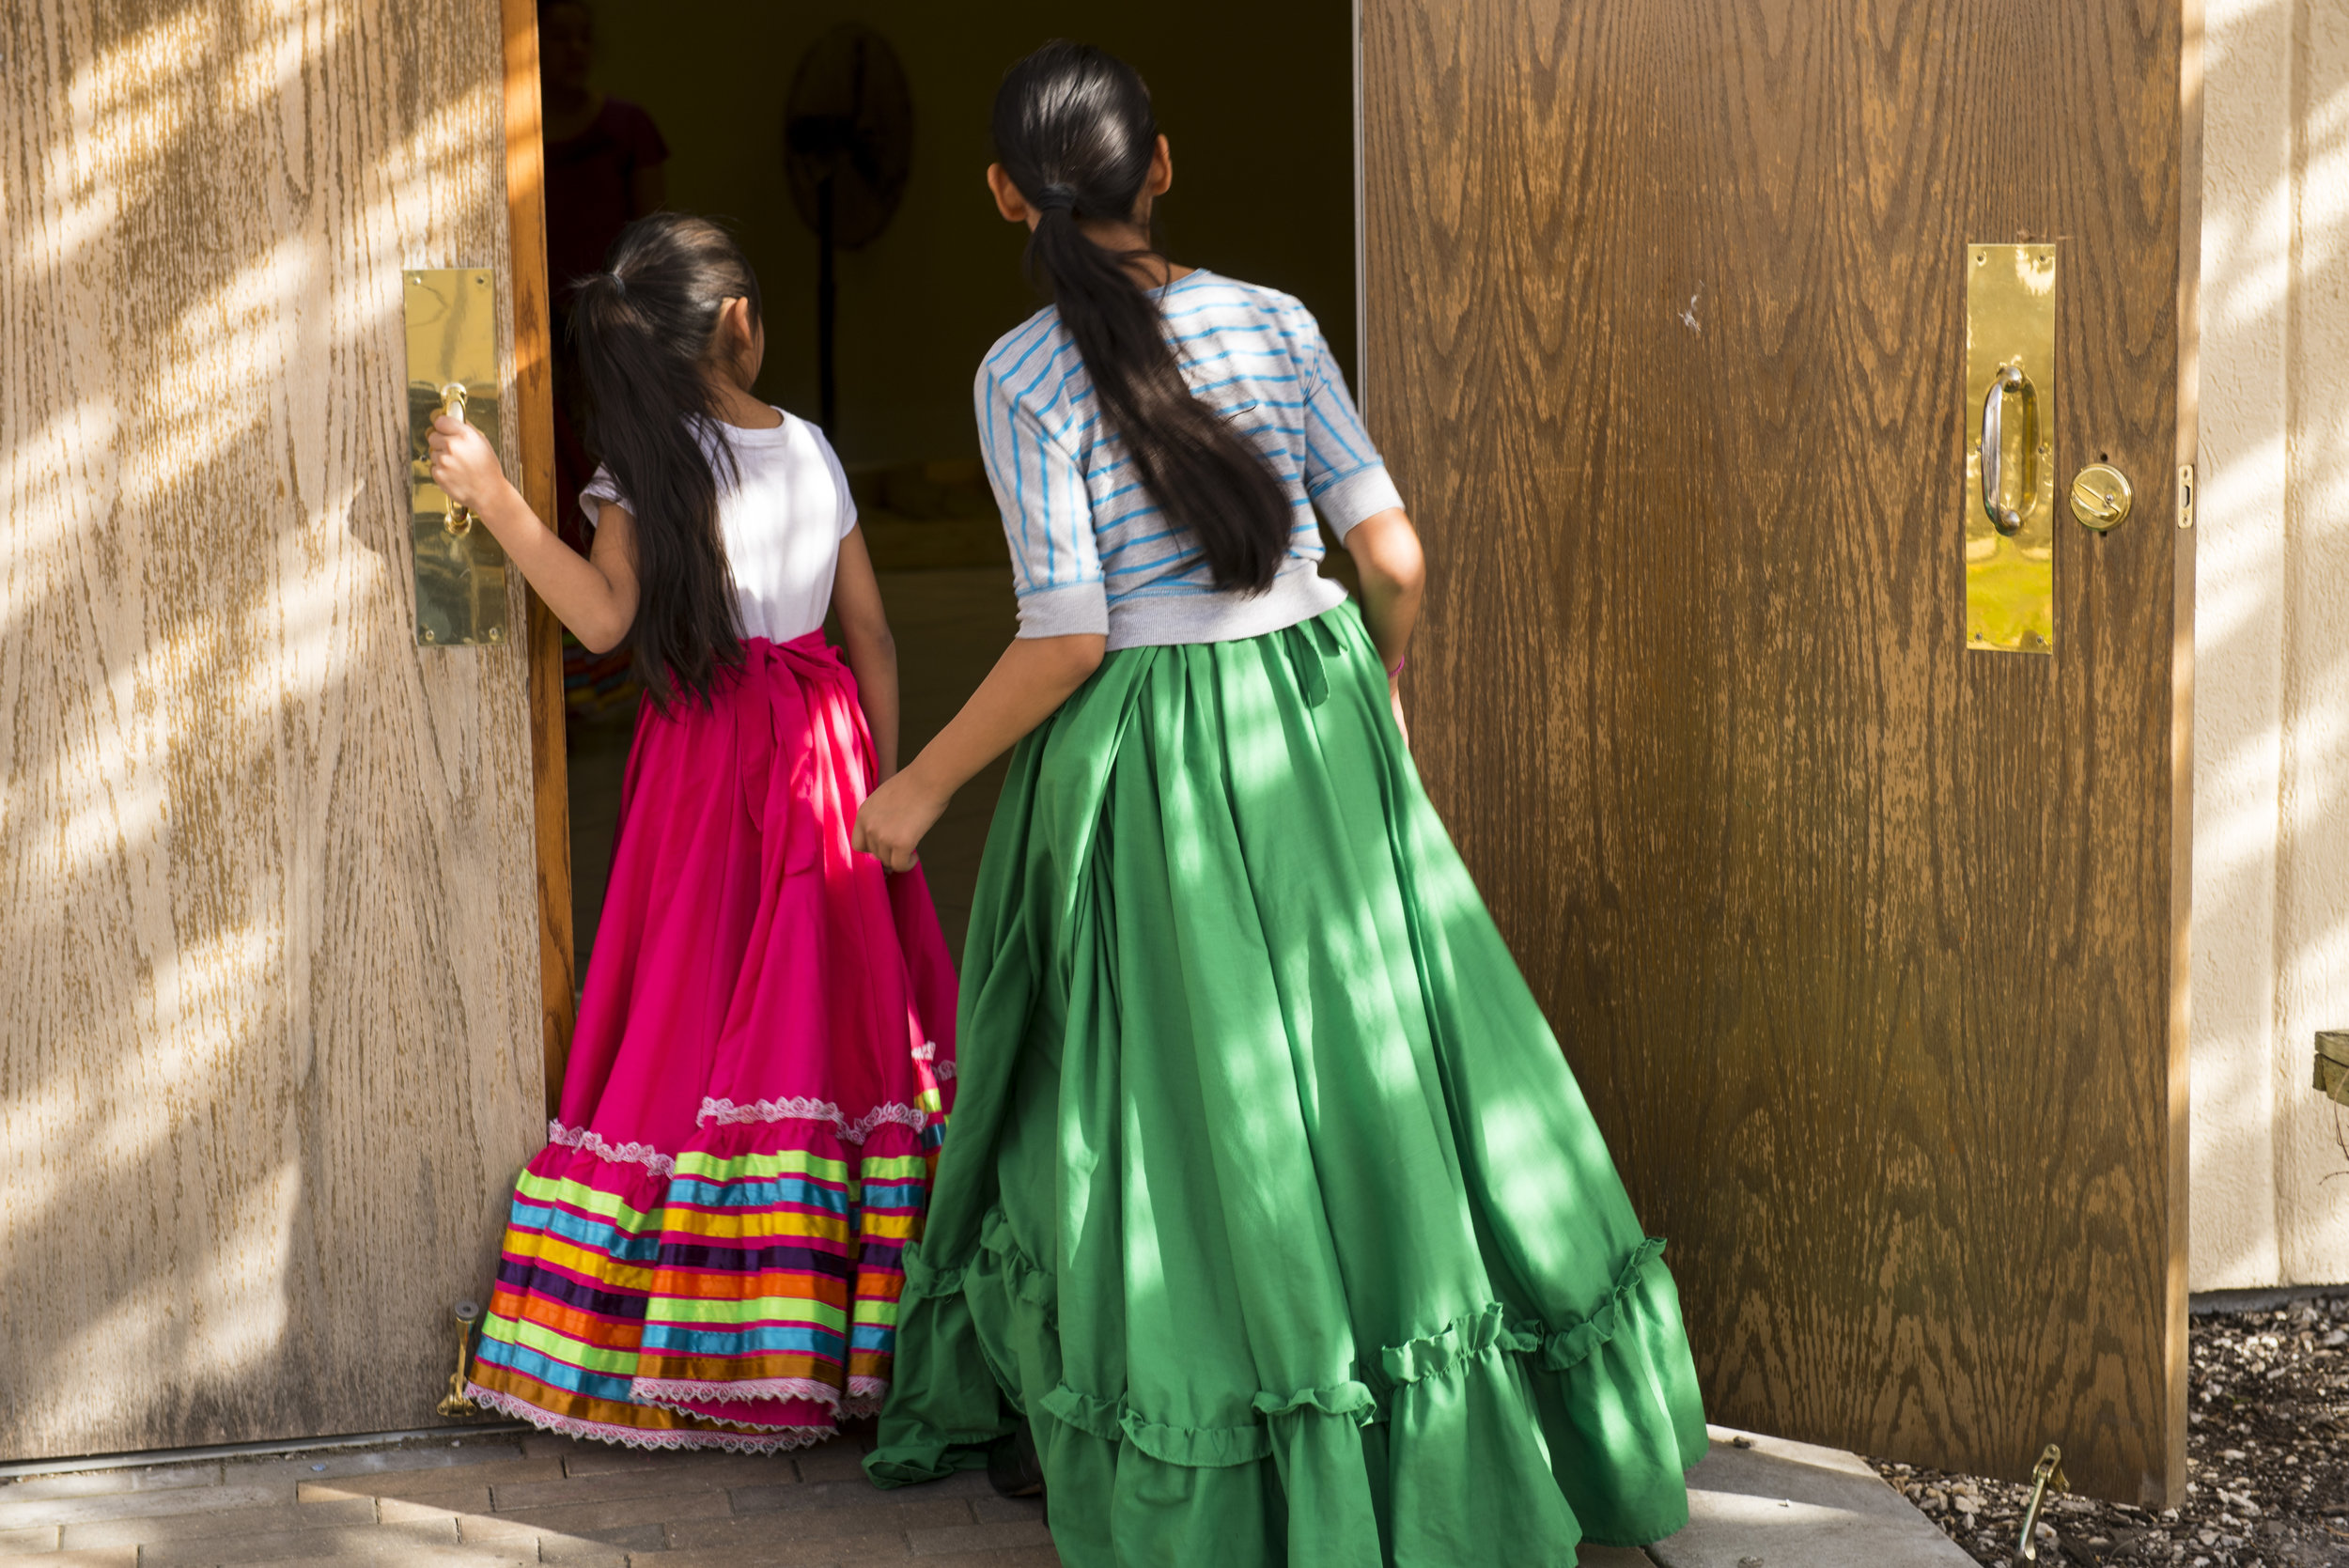 Dancers waiting for their turn to rehearse, watch another group practice in the building next to the taquería.